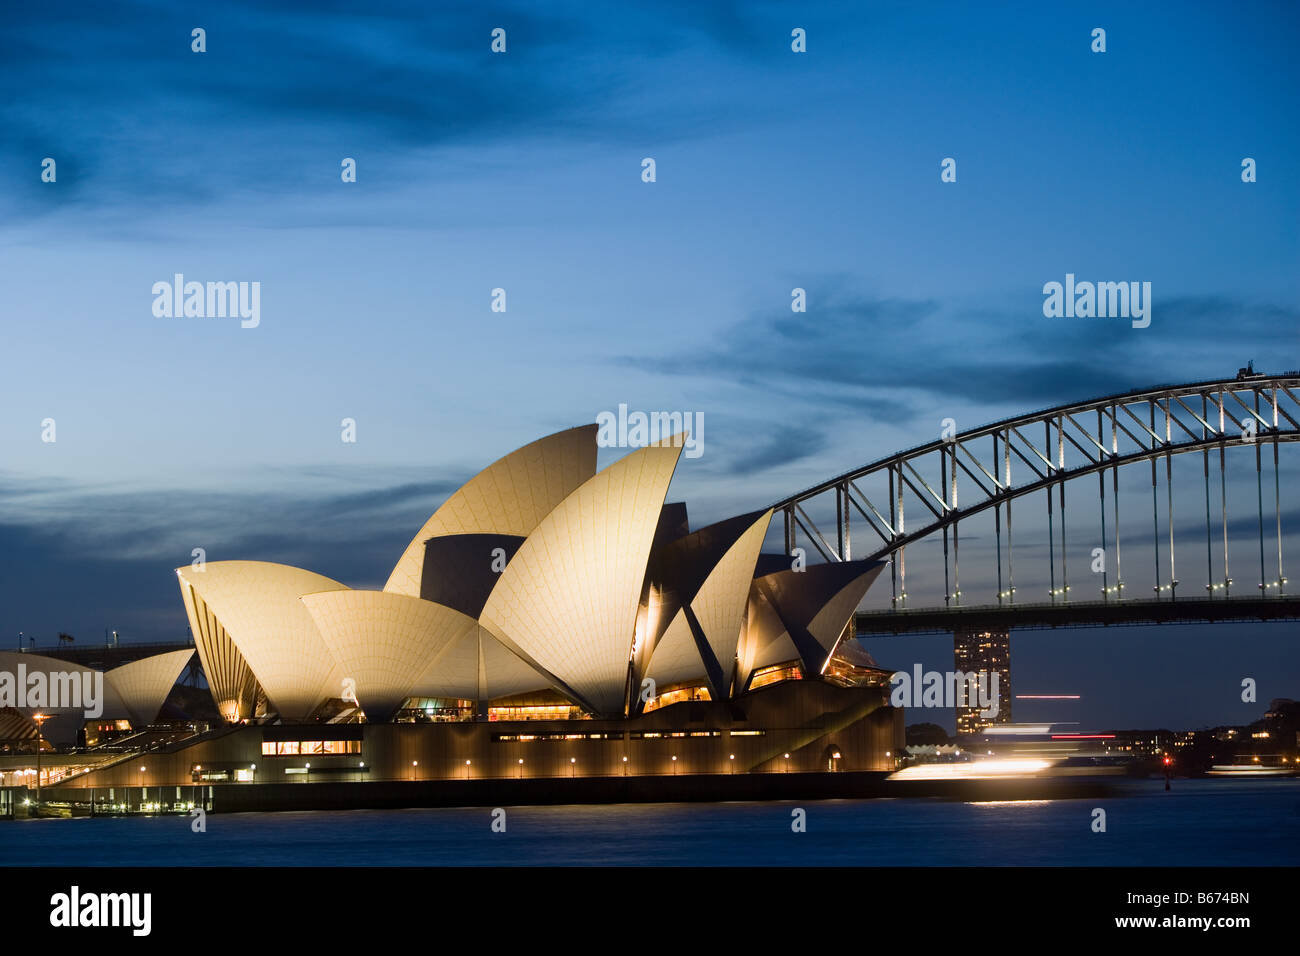 Sydney opera house and harbour bridge at night - Stock Image